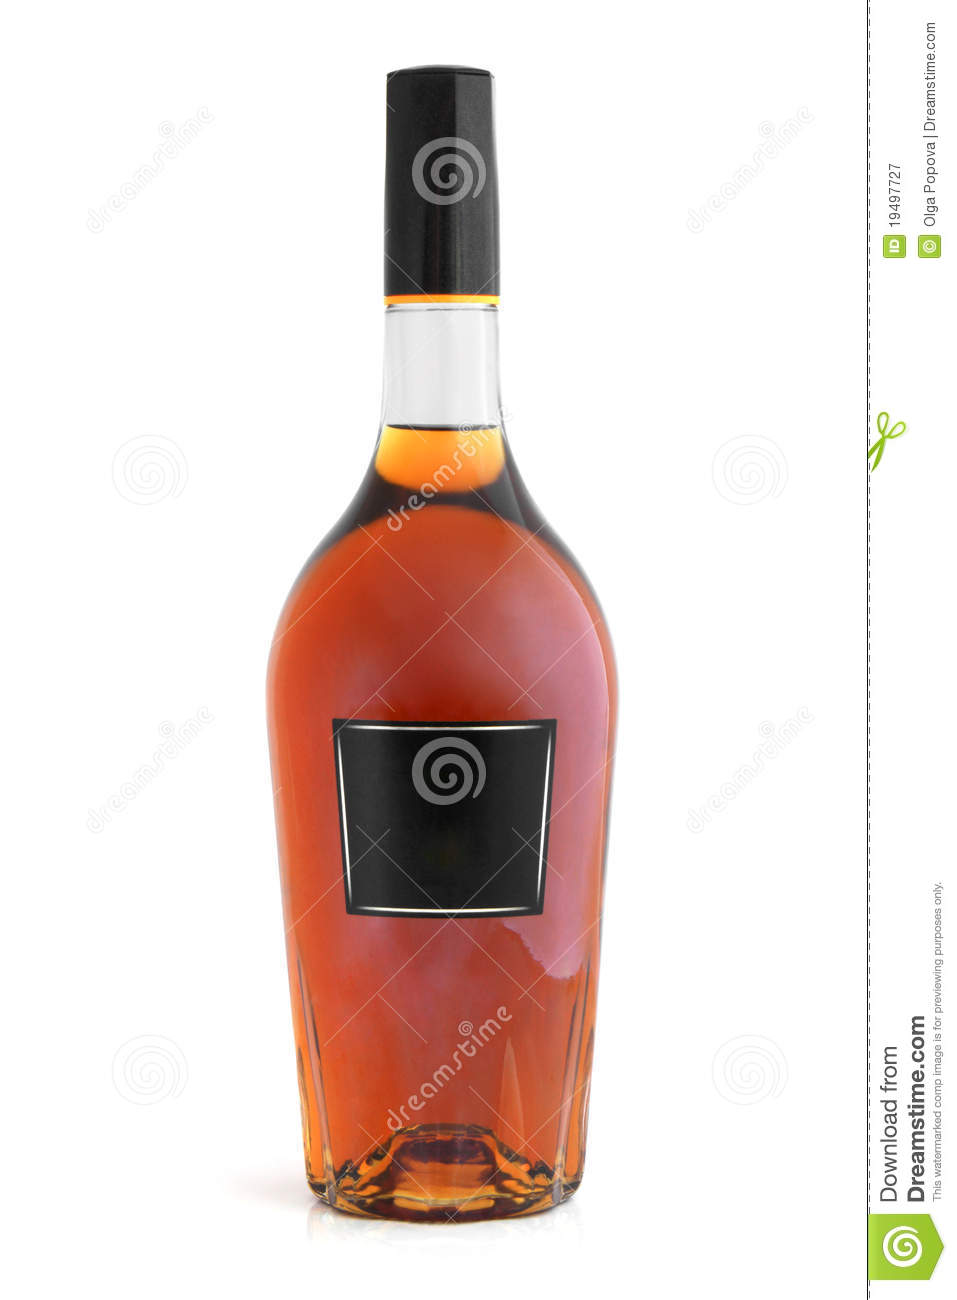 Bottle of cognac brandy royalty free stock photography image